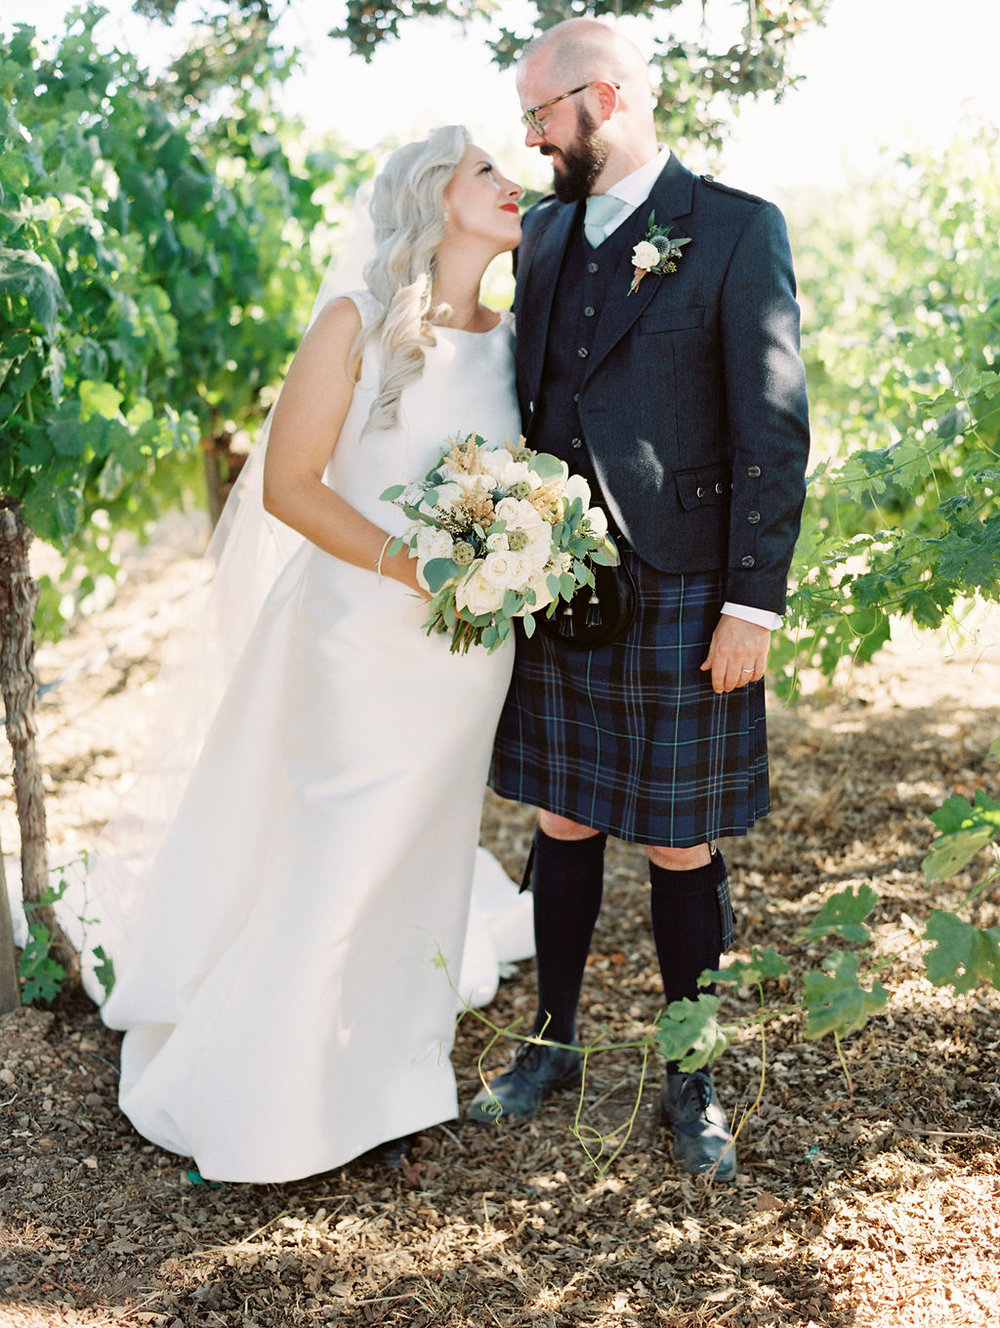 Madalyn & Michael - Lavender & Twine